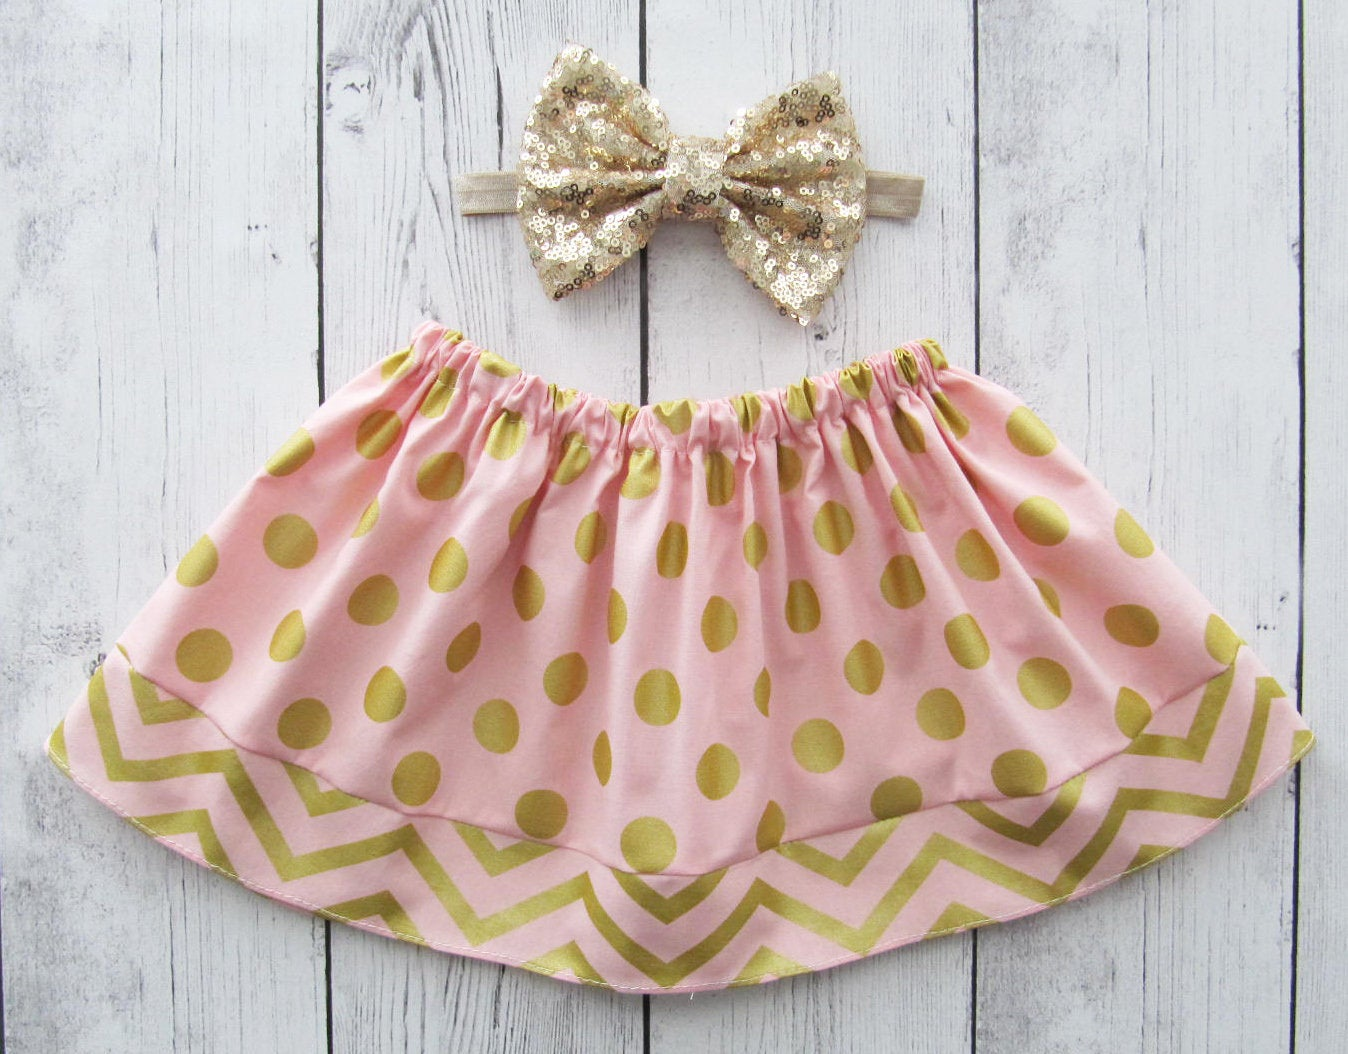 Pink Gold Dot Skirt for baby girl - pink gold skirt, polka dot skirt, baby girl skirt, blush gold skirt, rose gold skirt, gold dot skirt